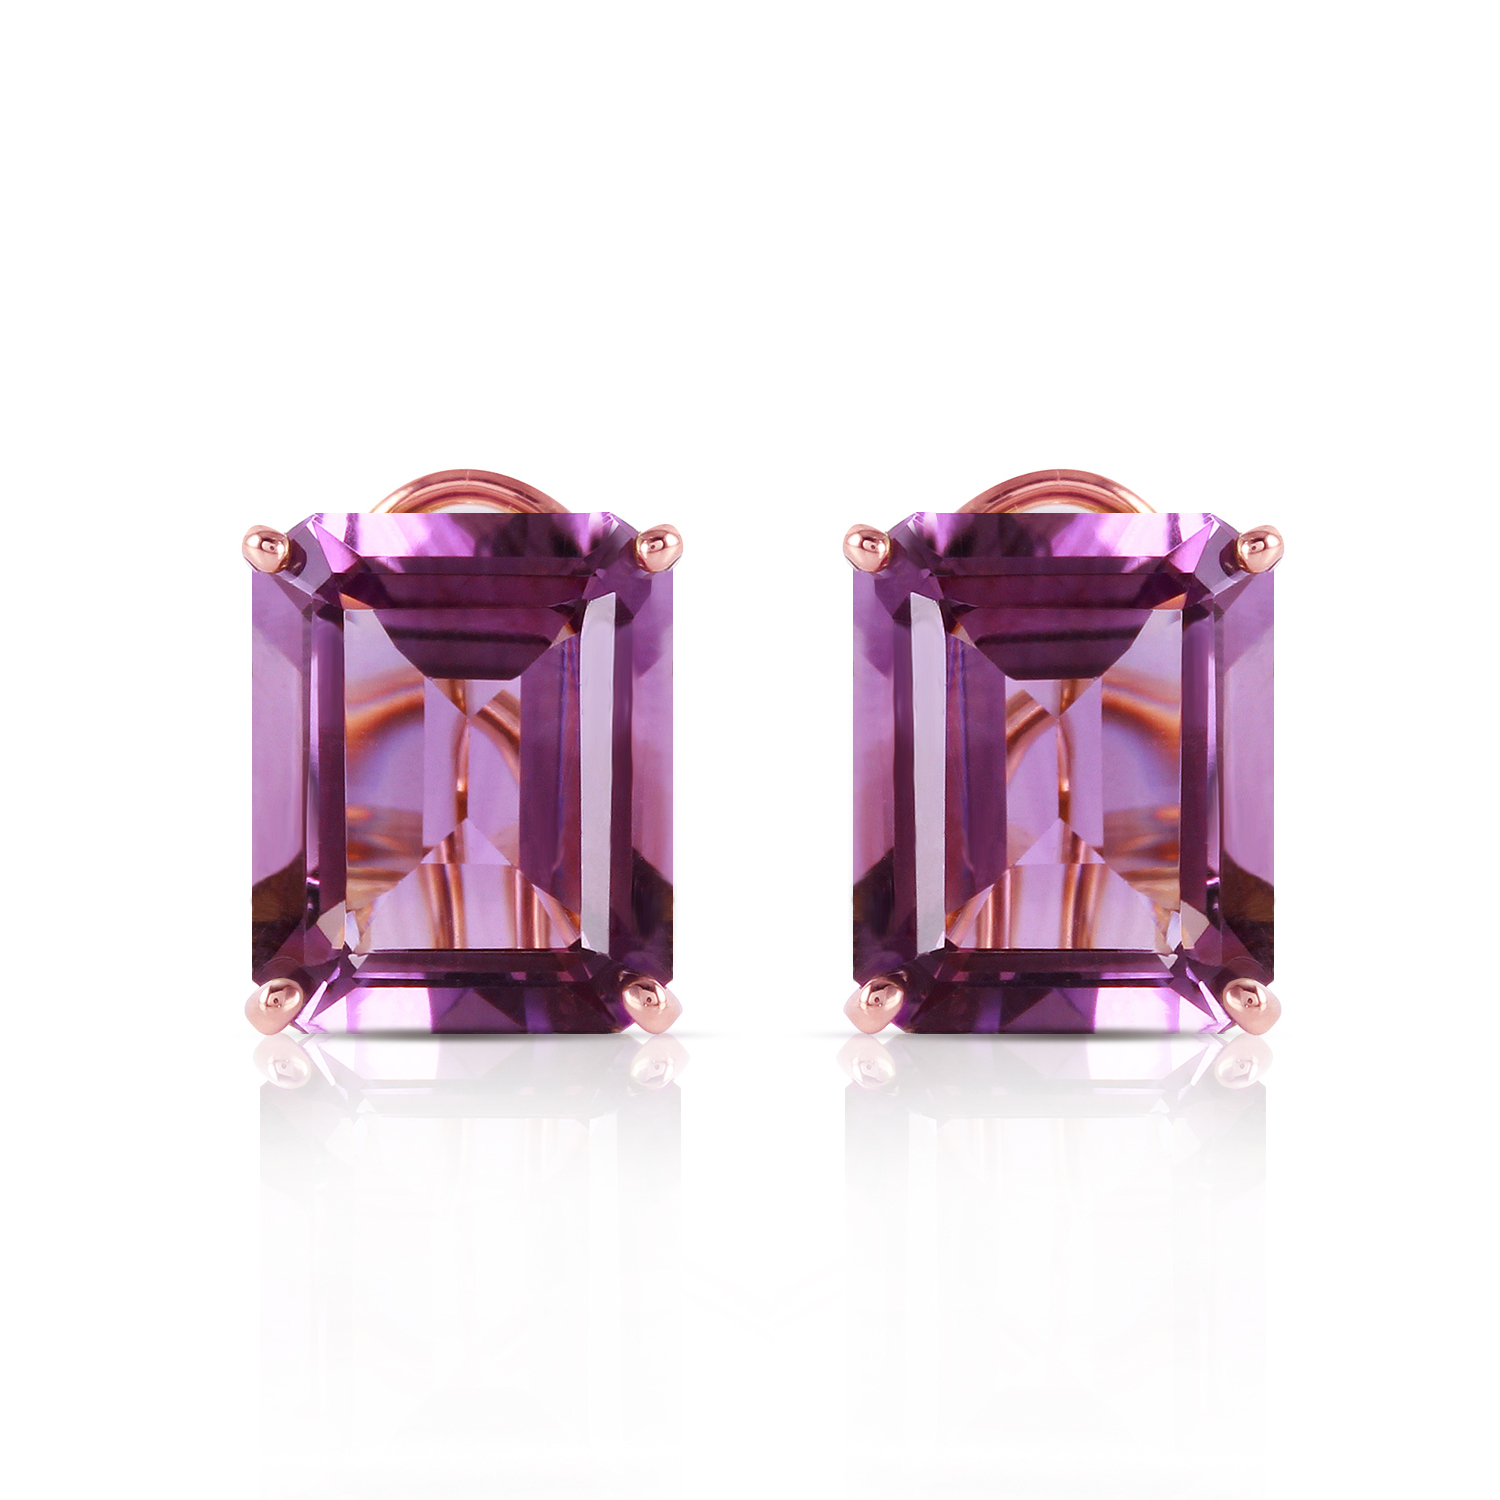 Primary image for 13 Carat 14K Solid Rose Gold Octagon Amethyst Earrings